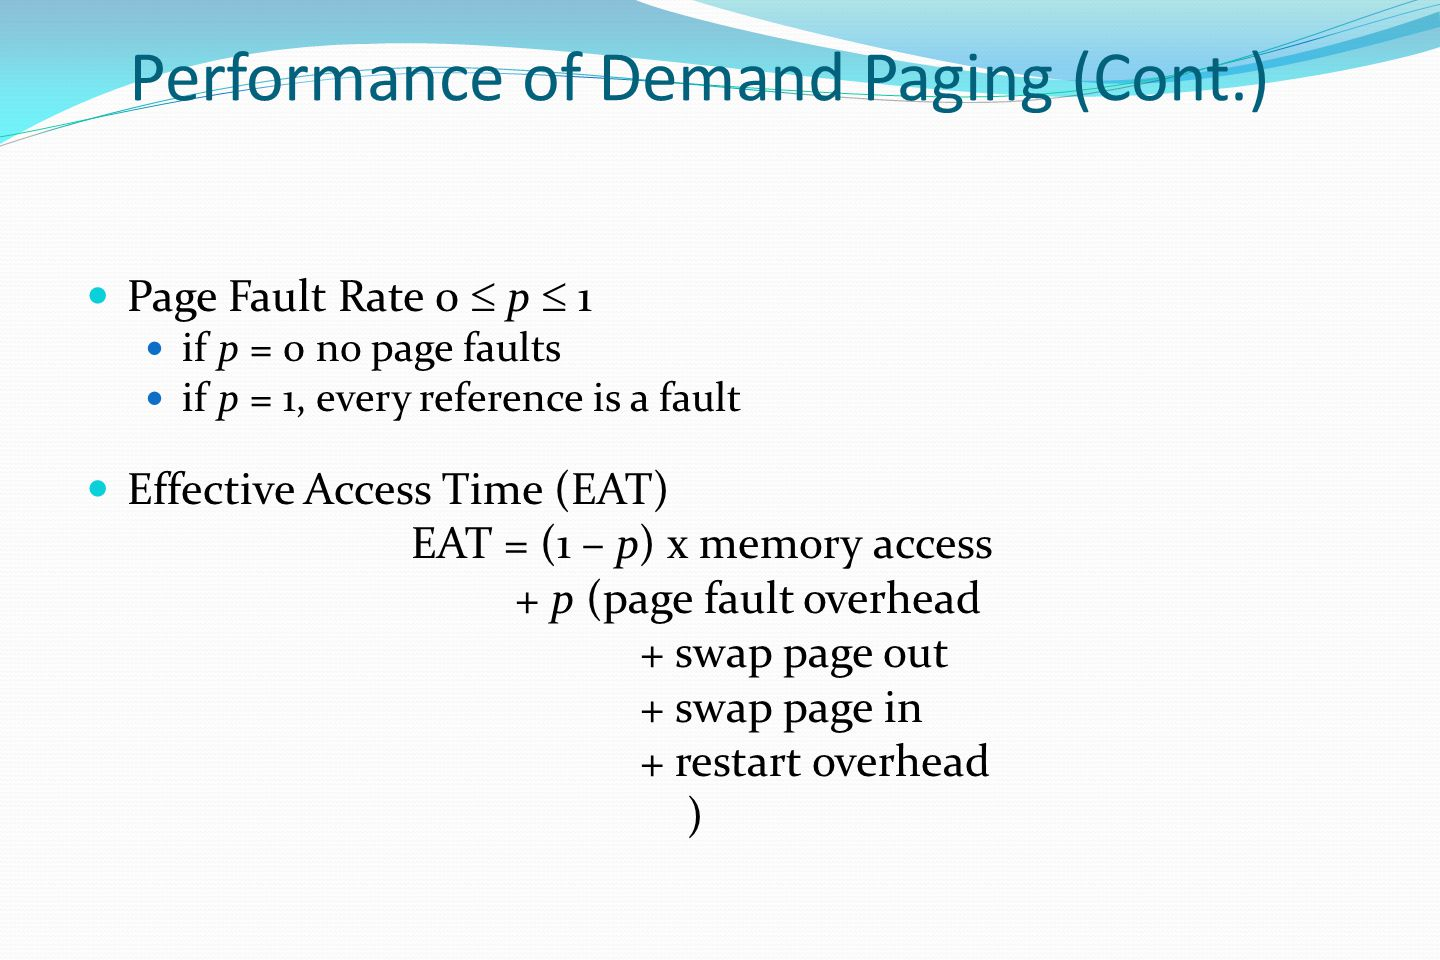 Performance of Demand Paging (Cont.) Page Fault Rate 0  p  1 if p = 0 no page faults if p = 1, every reference is a fault Effective Access Time (EAT) EAT = (1 – p) x memory access + p (page fault overhead + swap page out + swap page in + restart overhead )